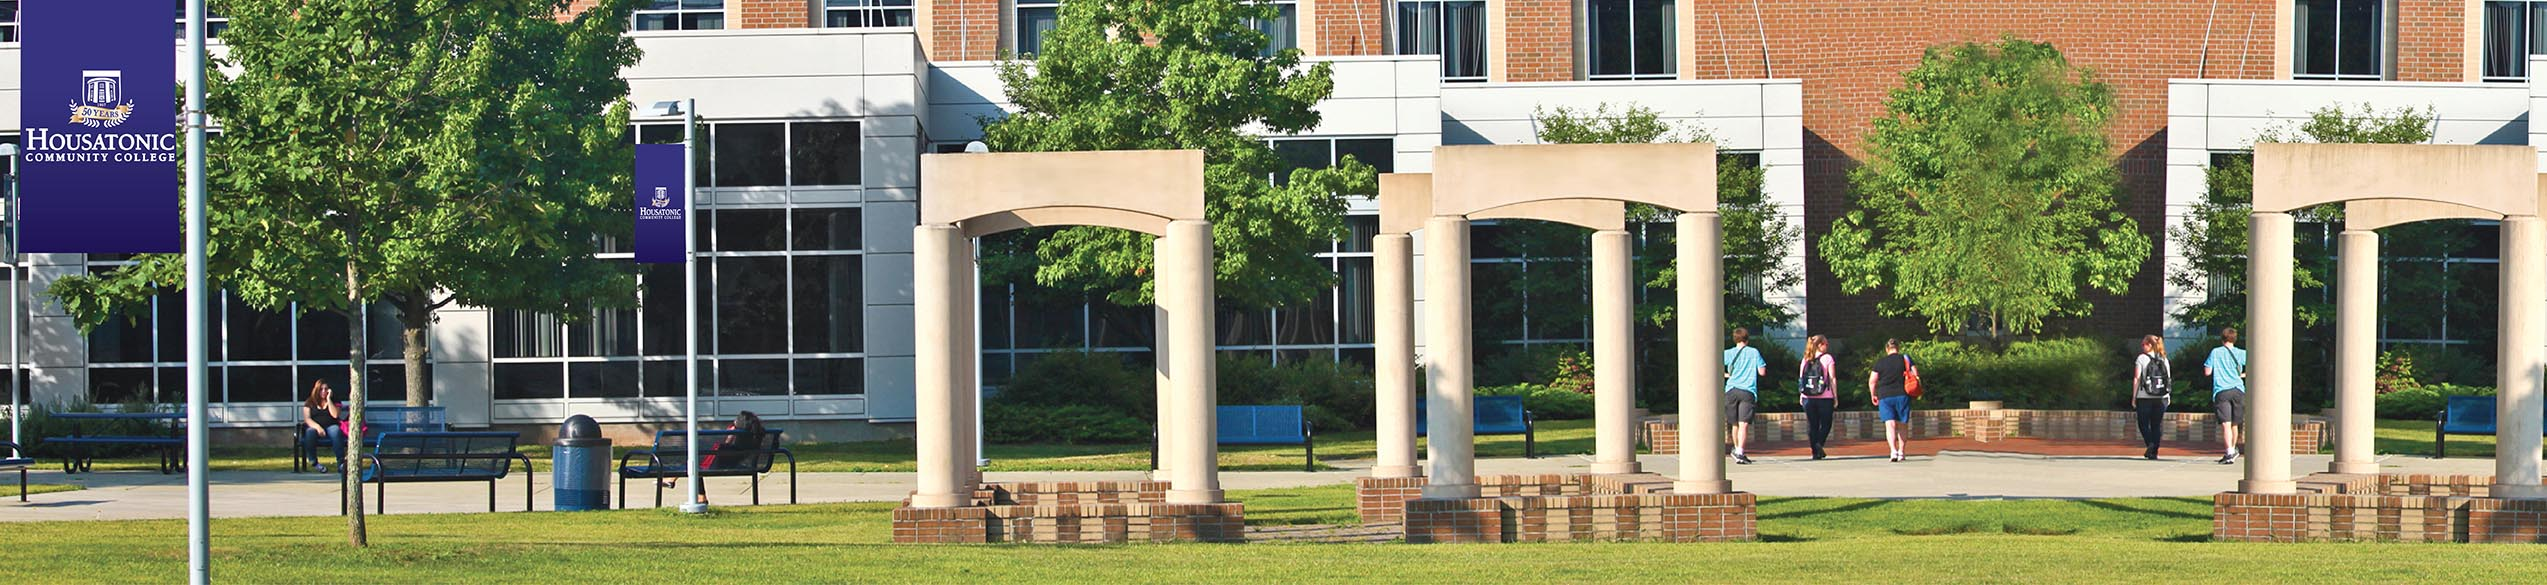 community college online Genesee community college (gcc) offers a wide variety of online classes every semester.